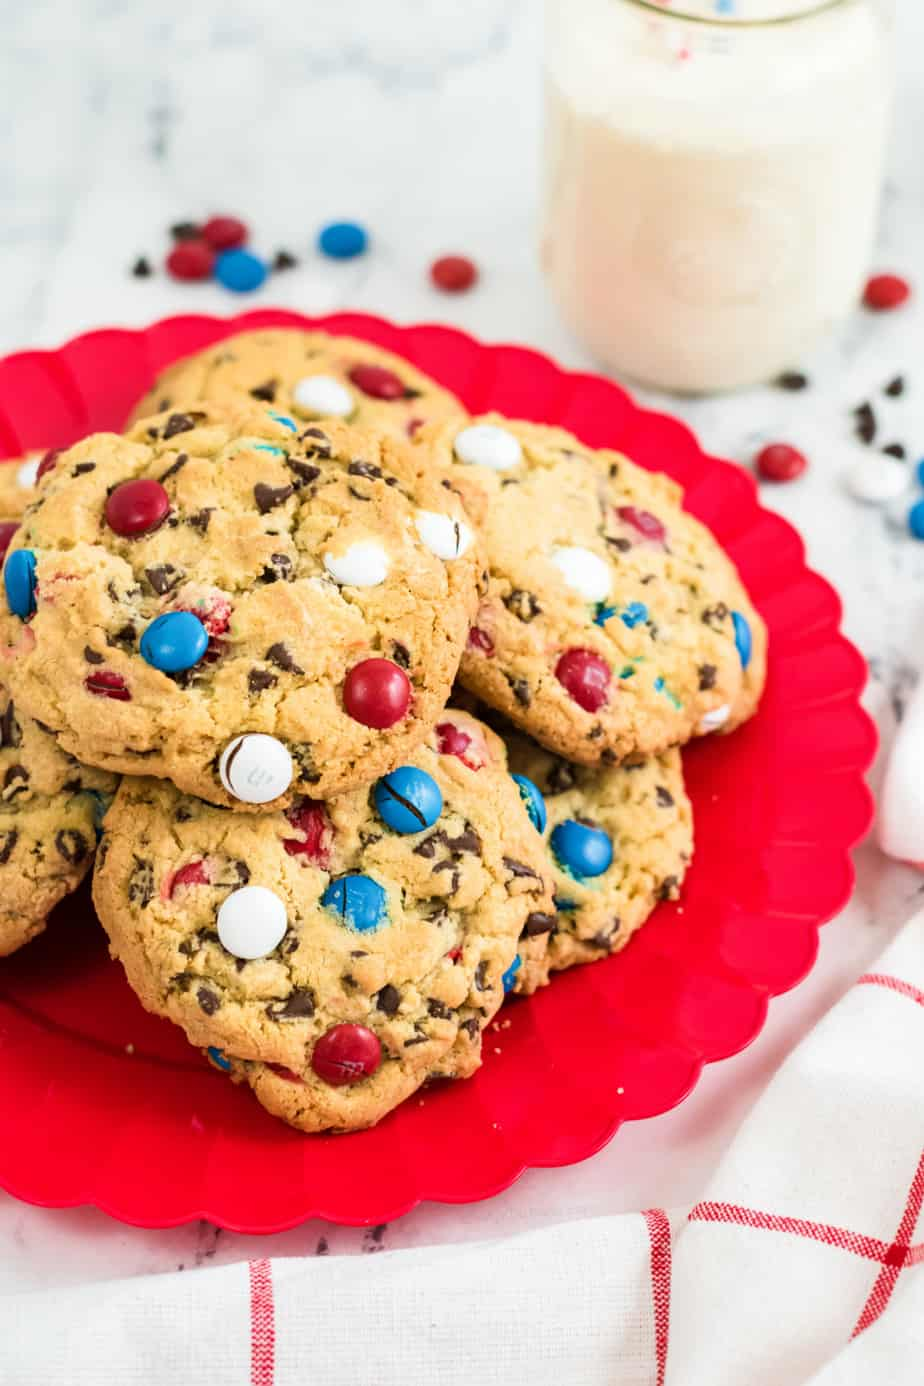 Cookies on a platter with red, white and blue M&M candies and milk in the background